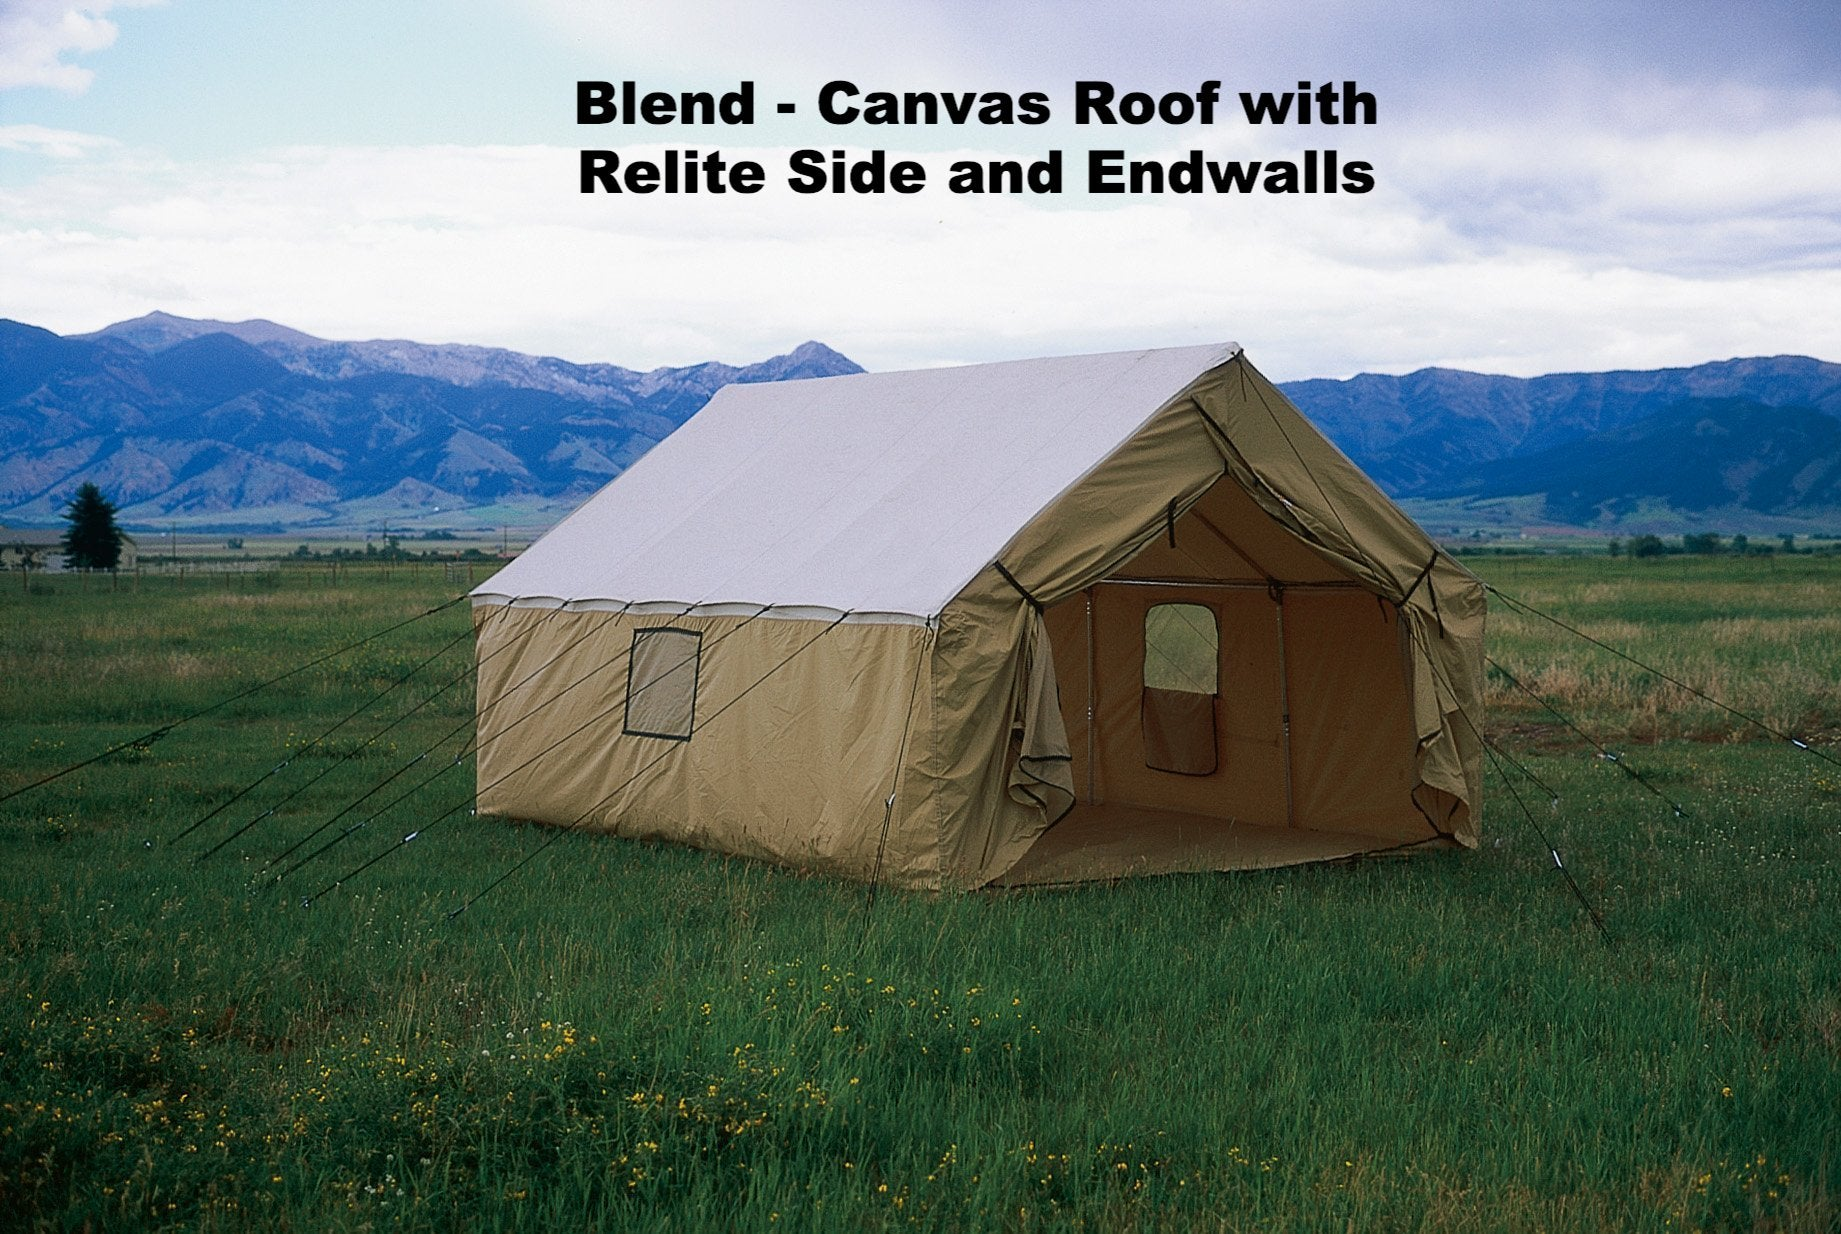 Montana Canvas Wall Tents - Outfitter Warehouse  Montana Canvas Hunting Tent